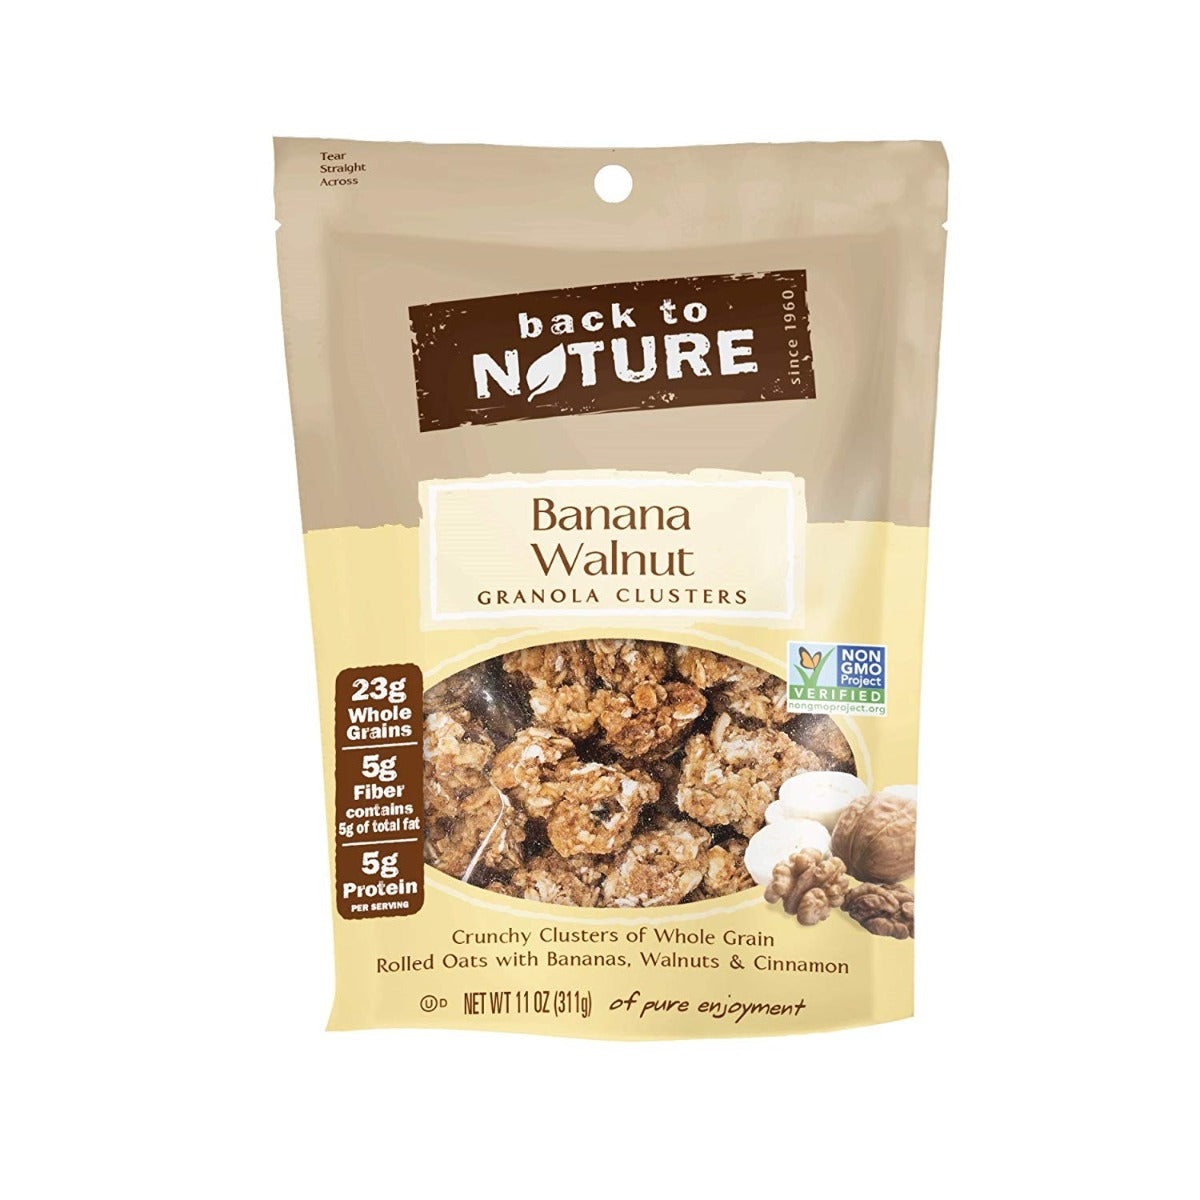 BACK TO NATURE: Banana Walnut Granola Clusters, 11 oz